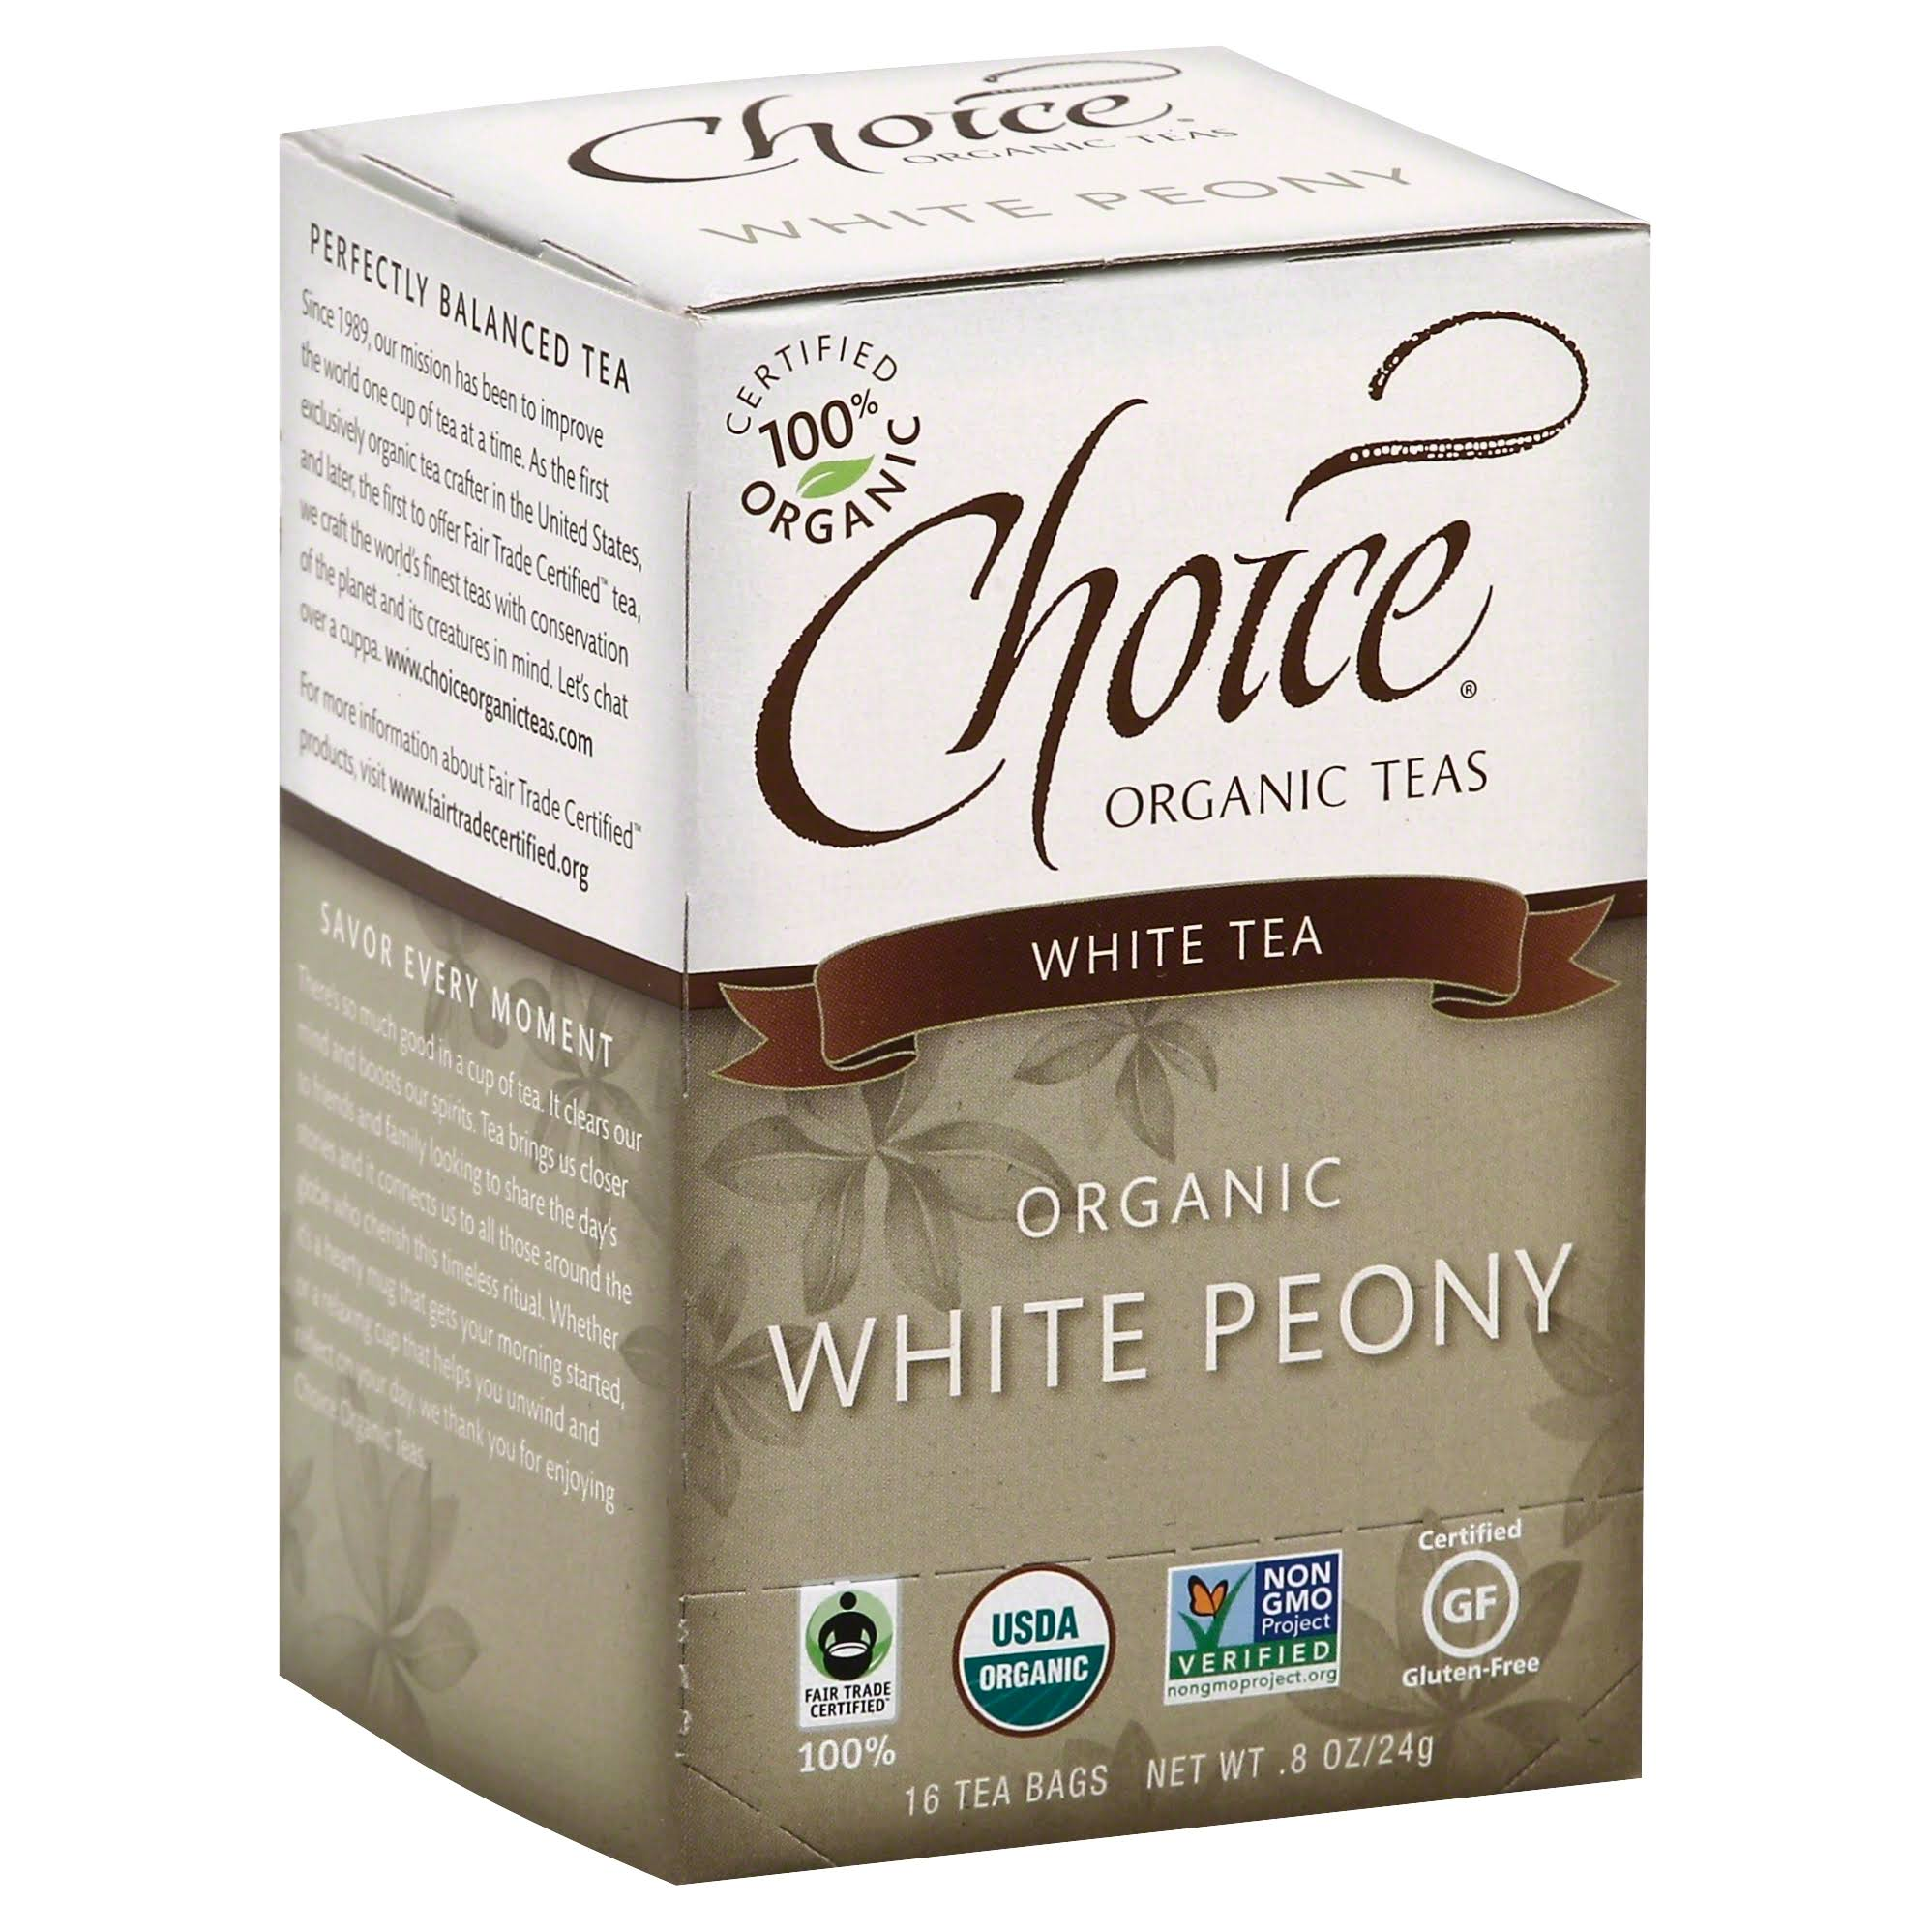 Choice Organic White Tea